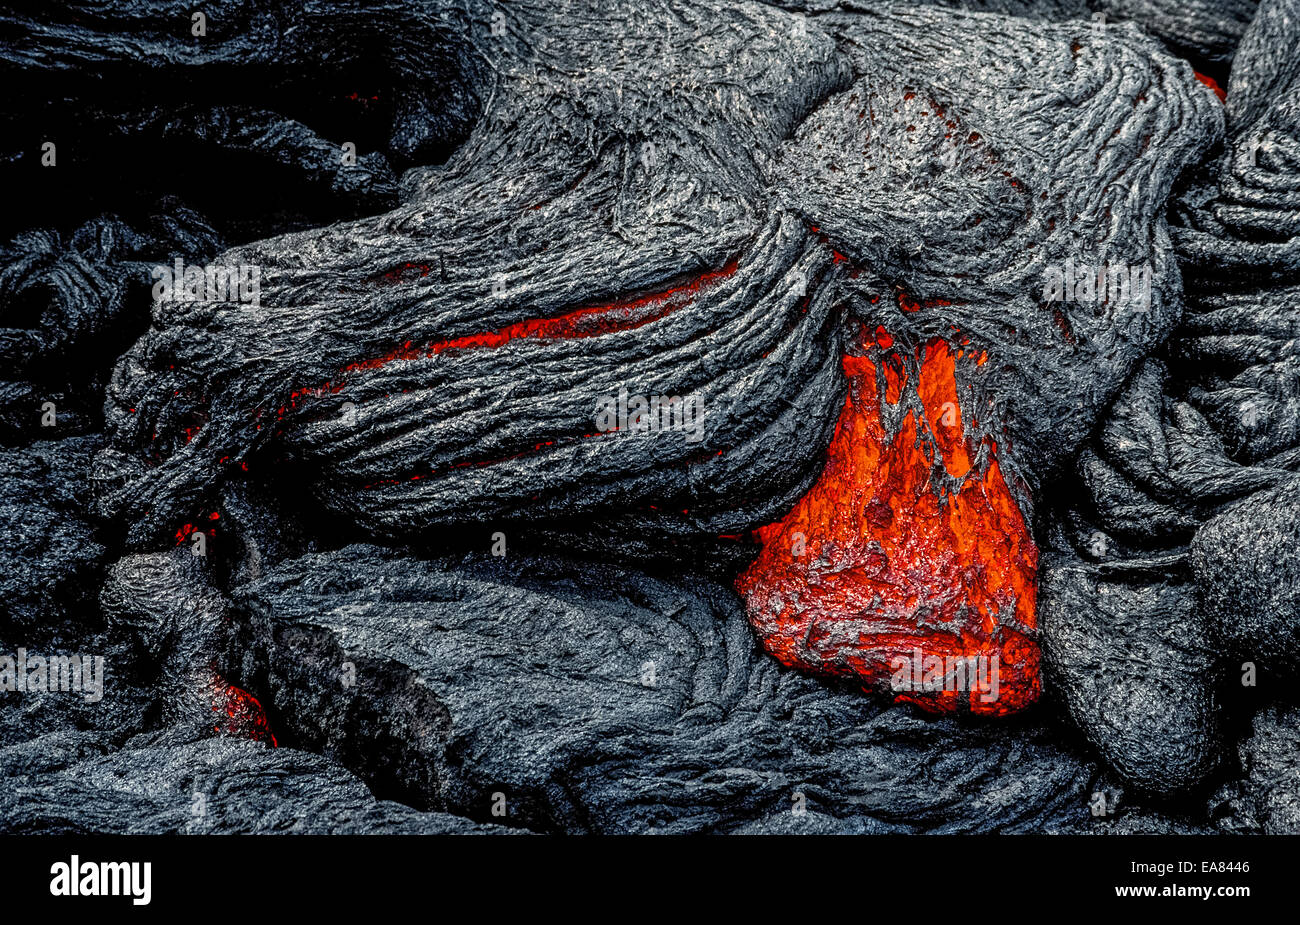 molten lava rock that glows from its extreme heat flows